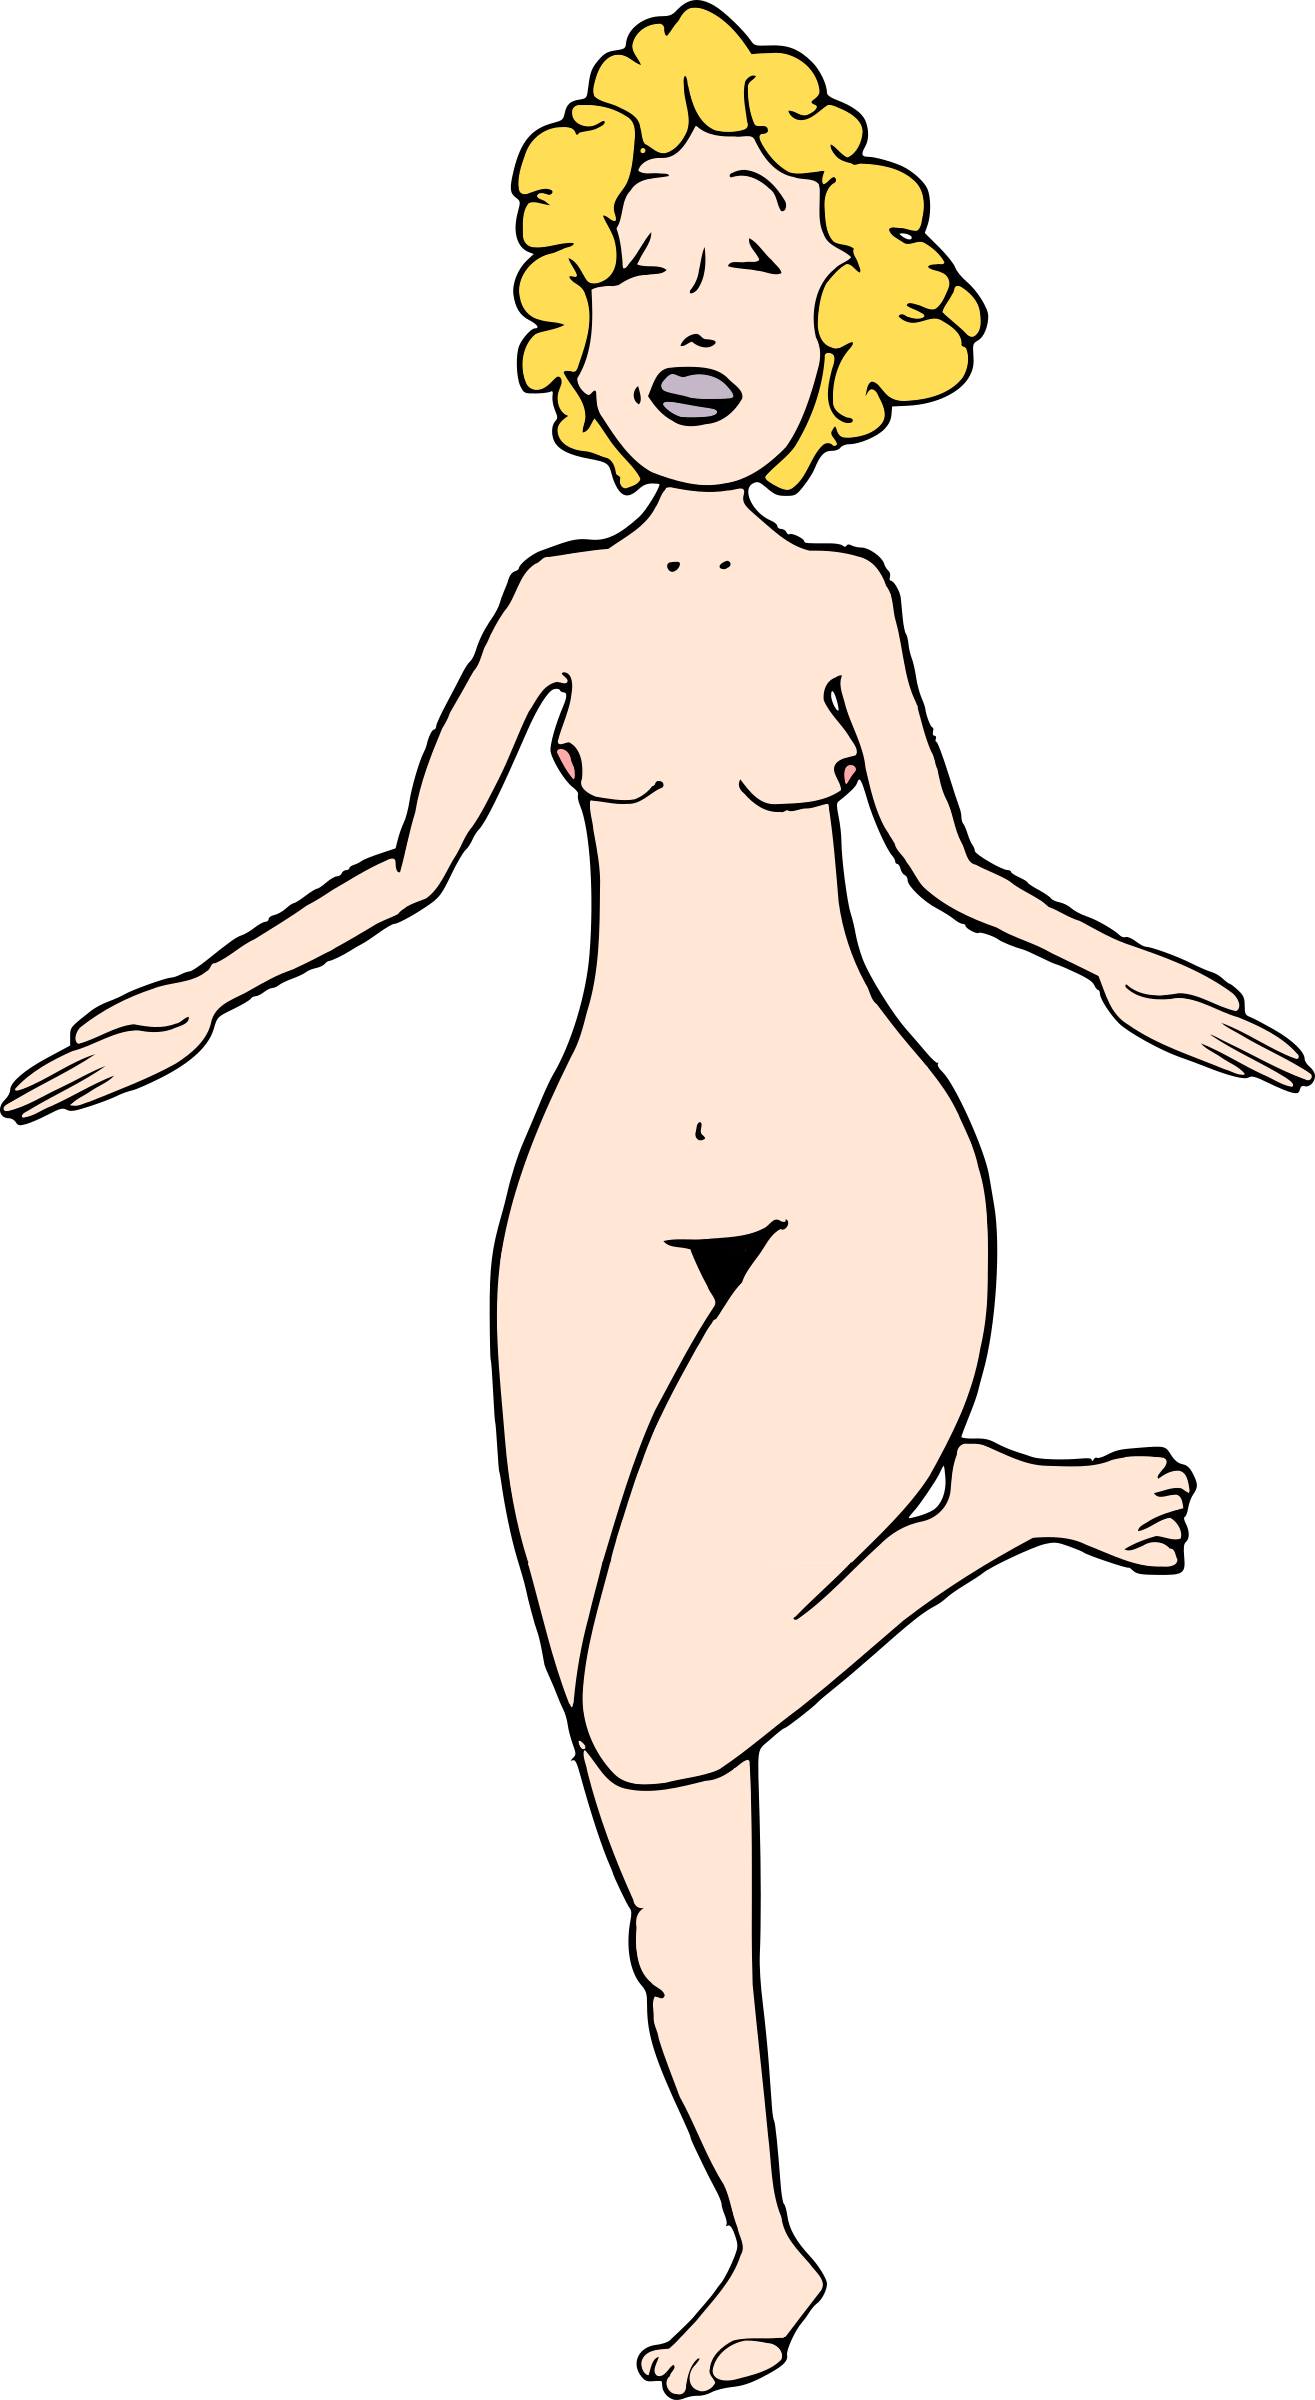 Woman Nude 5 by doodleguy